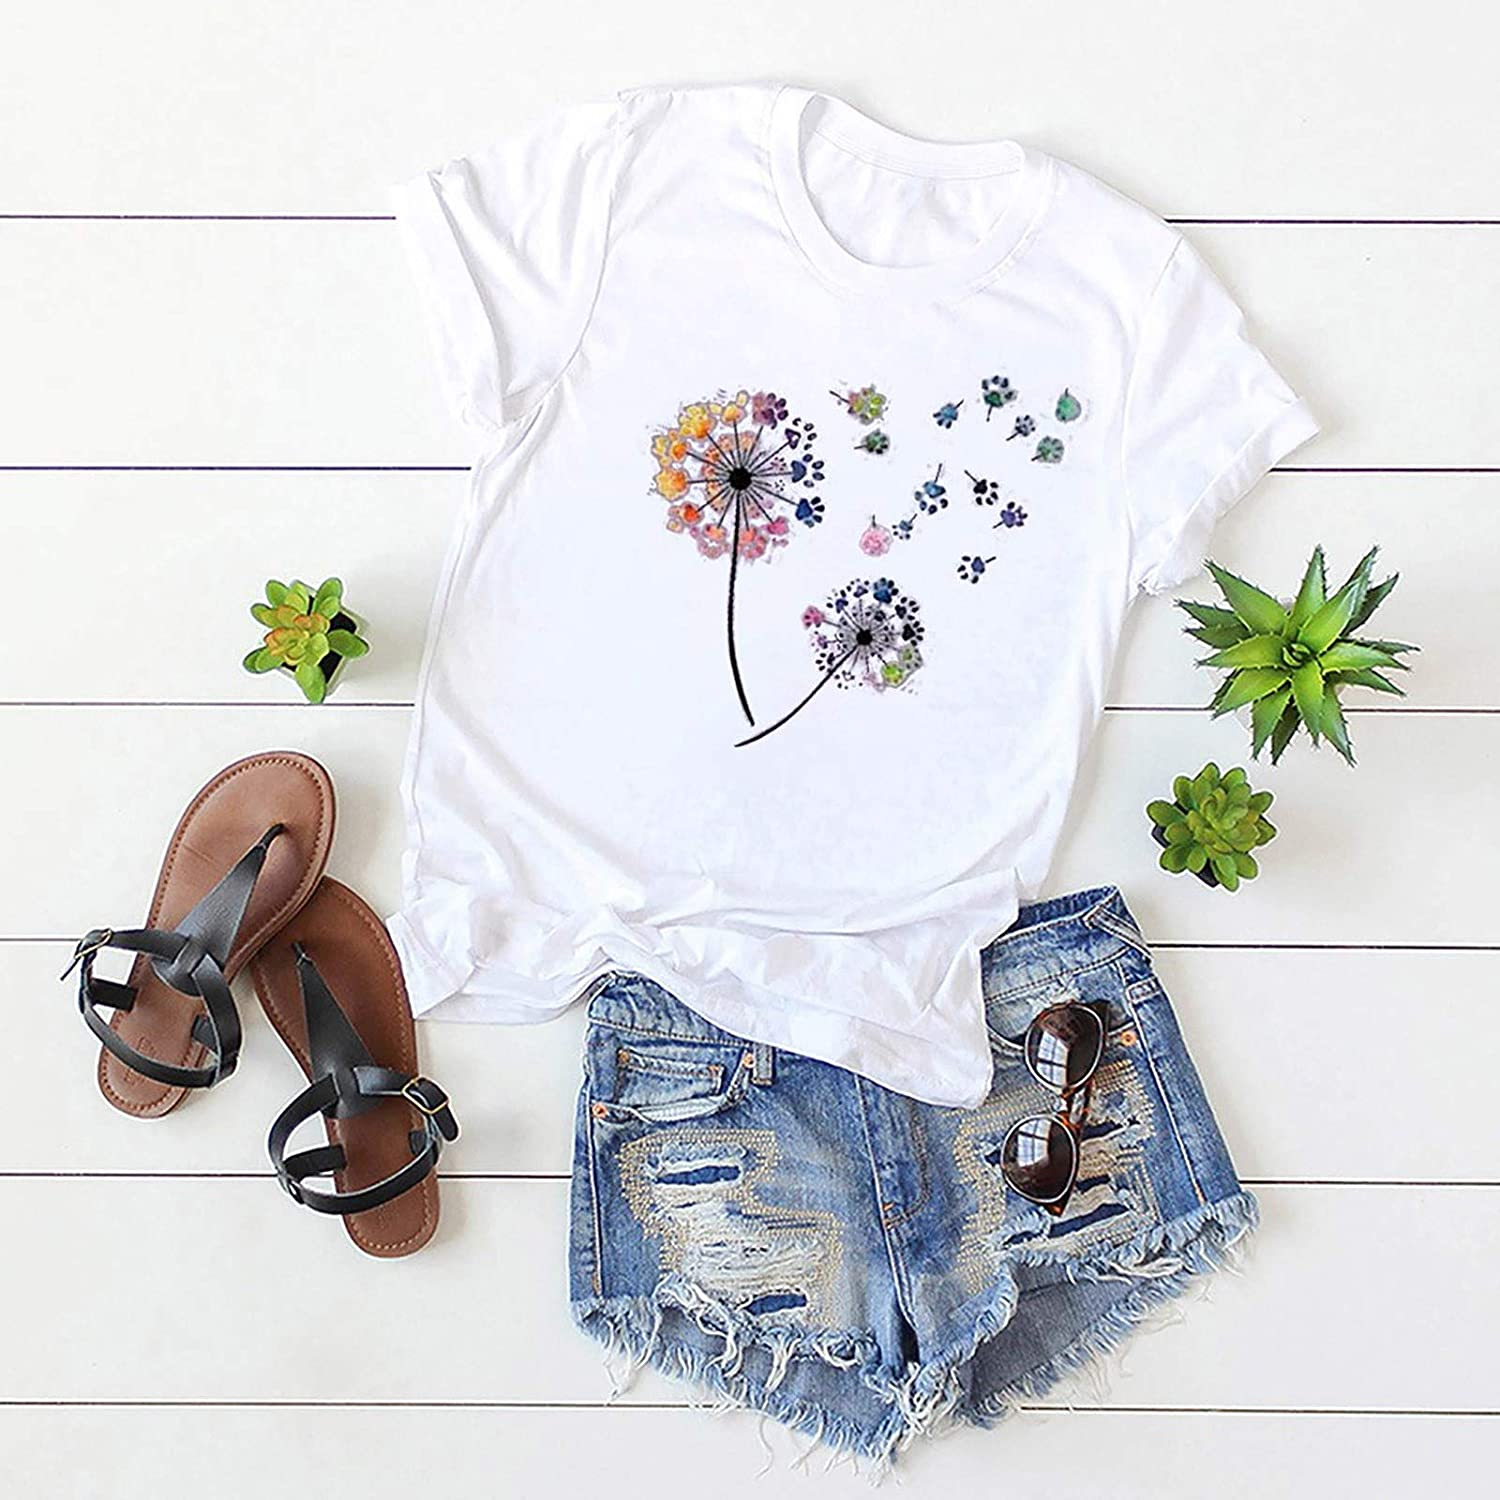 FABIURT T-Shirt for Women,Womens Summer Casual Danelion Printed T Shirts Comfy Short Sleeve Round Neck Graphic Tees Tops